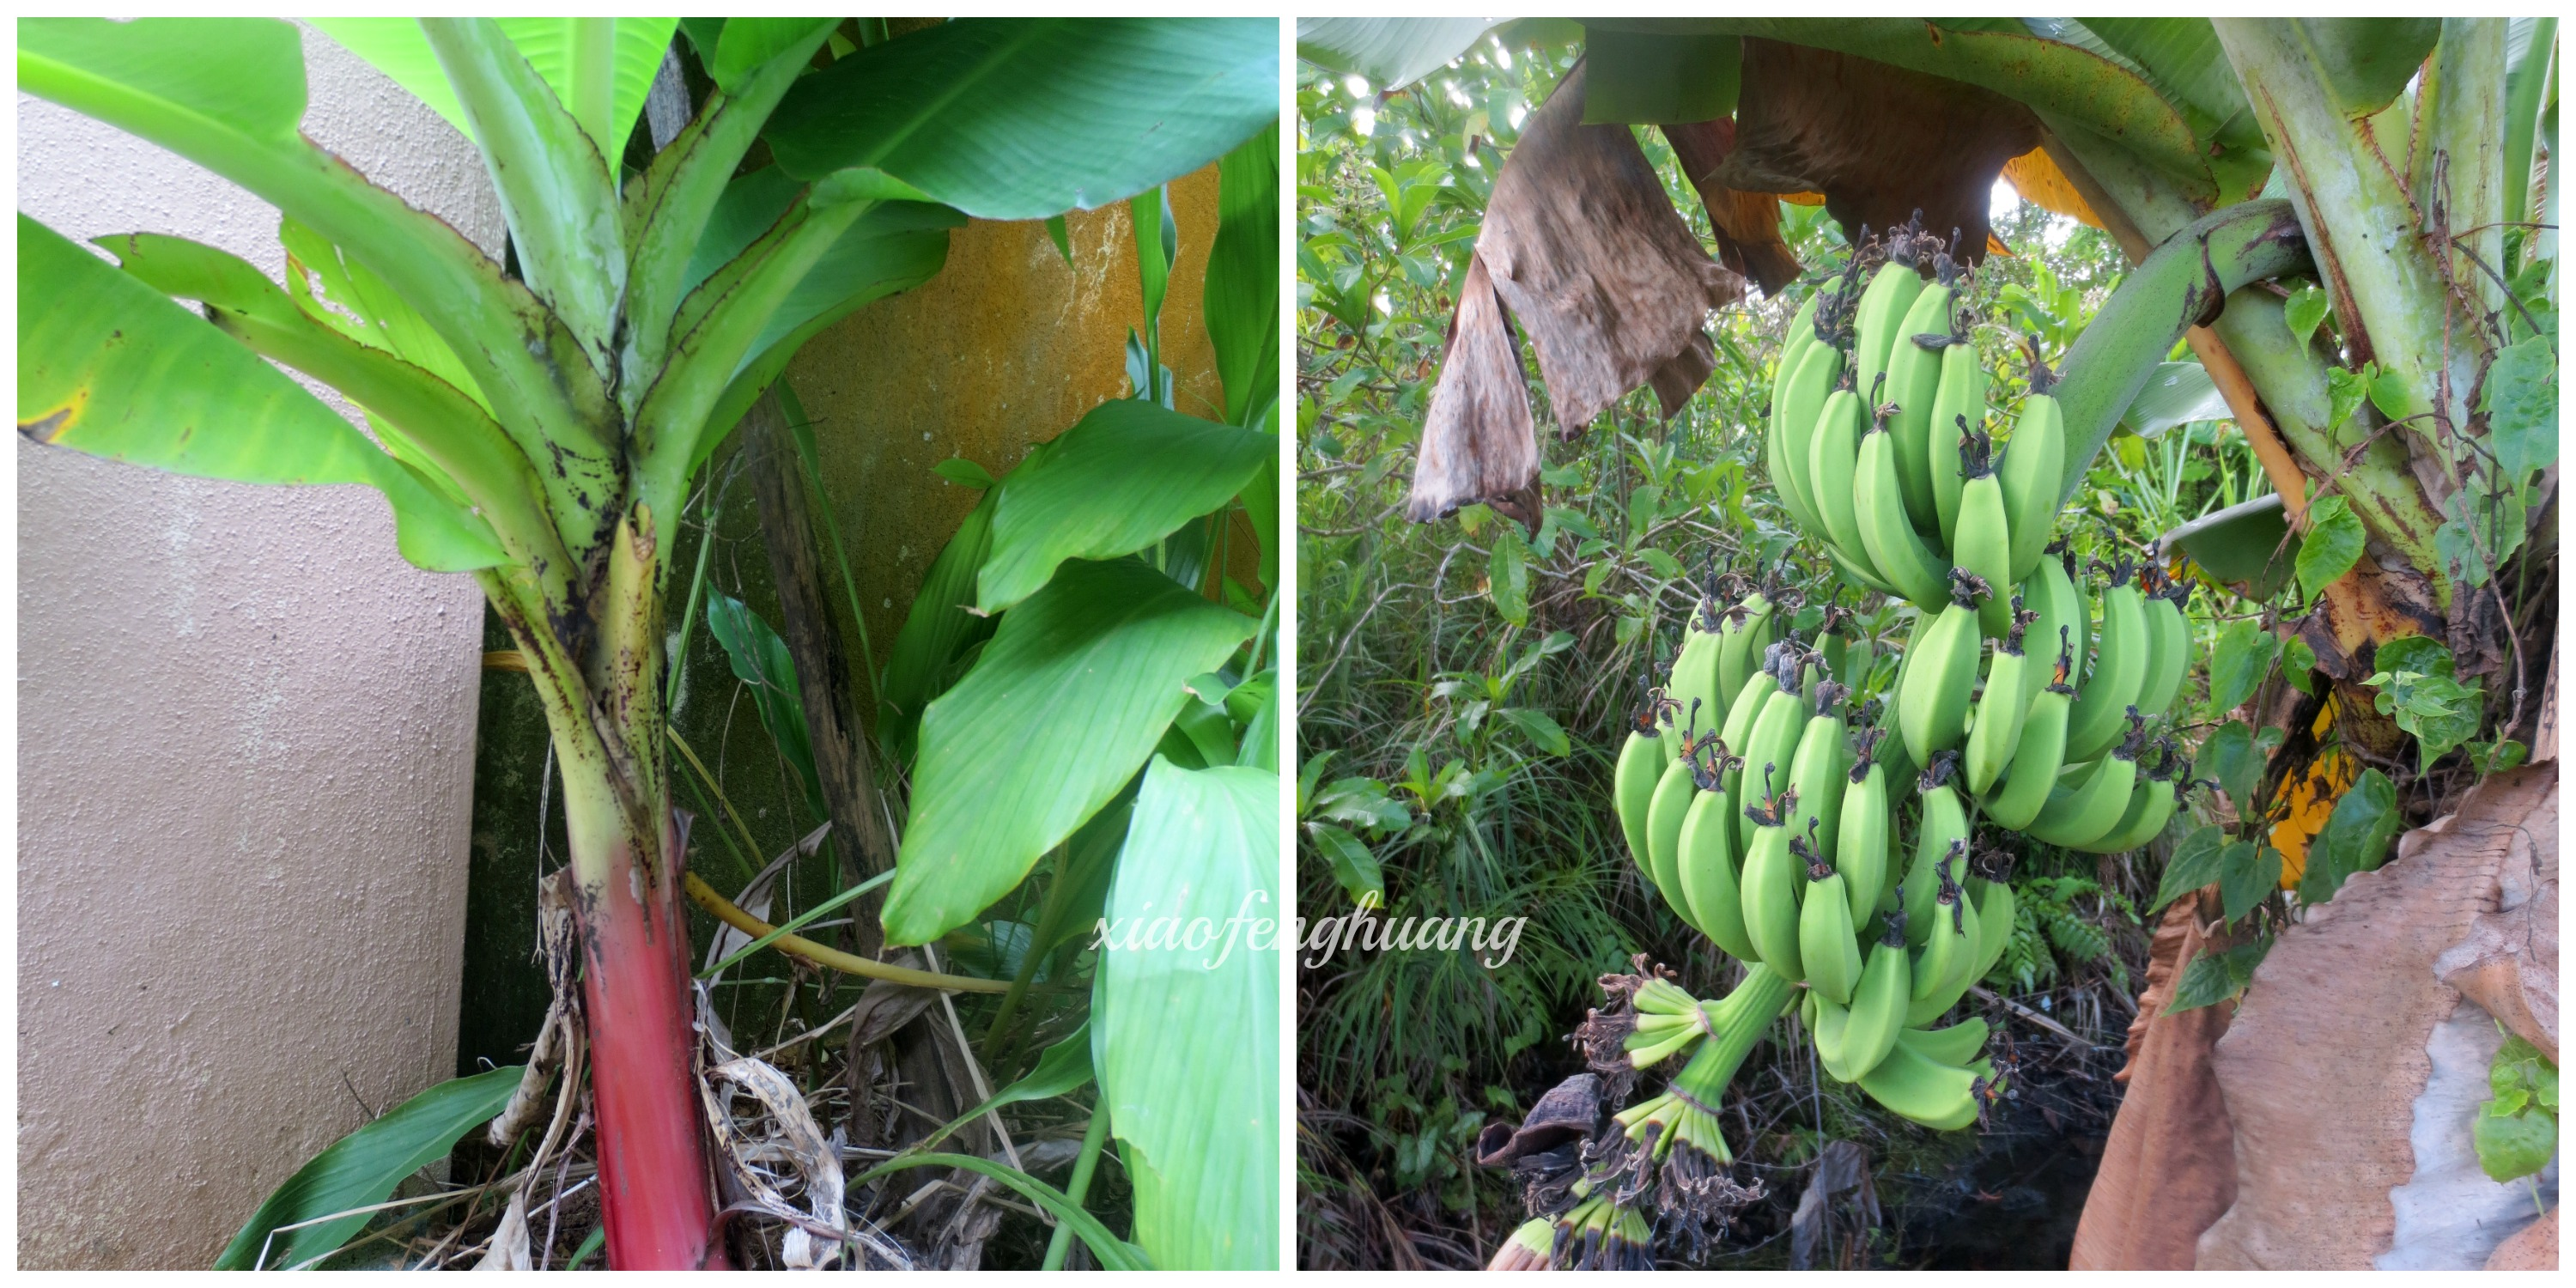 Left - Pisang Serendah/Kapal (Dwarf Banana) Right - Fruits of Pisang Serendah